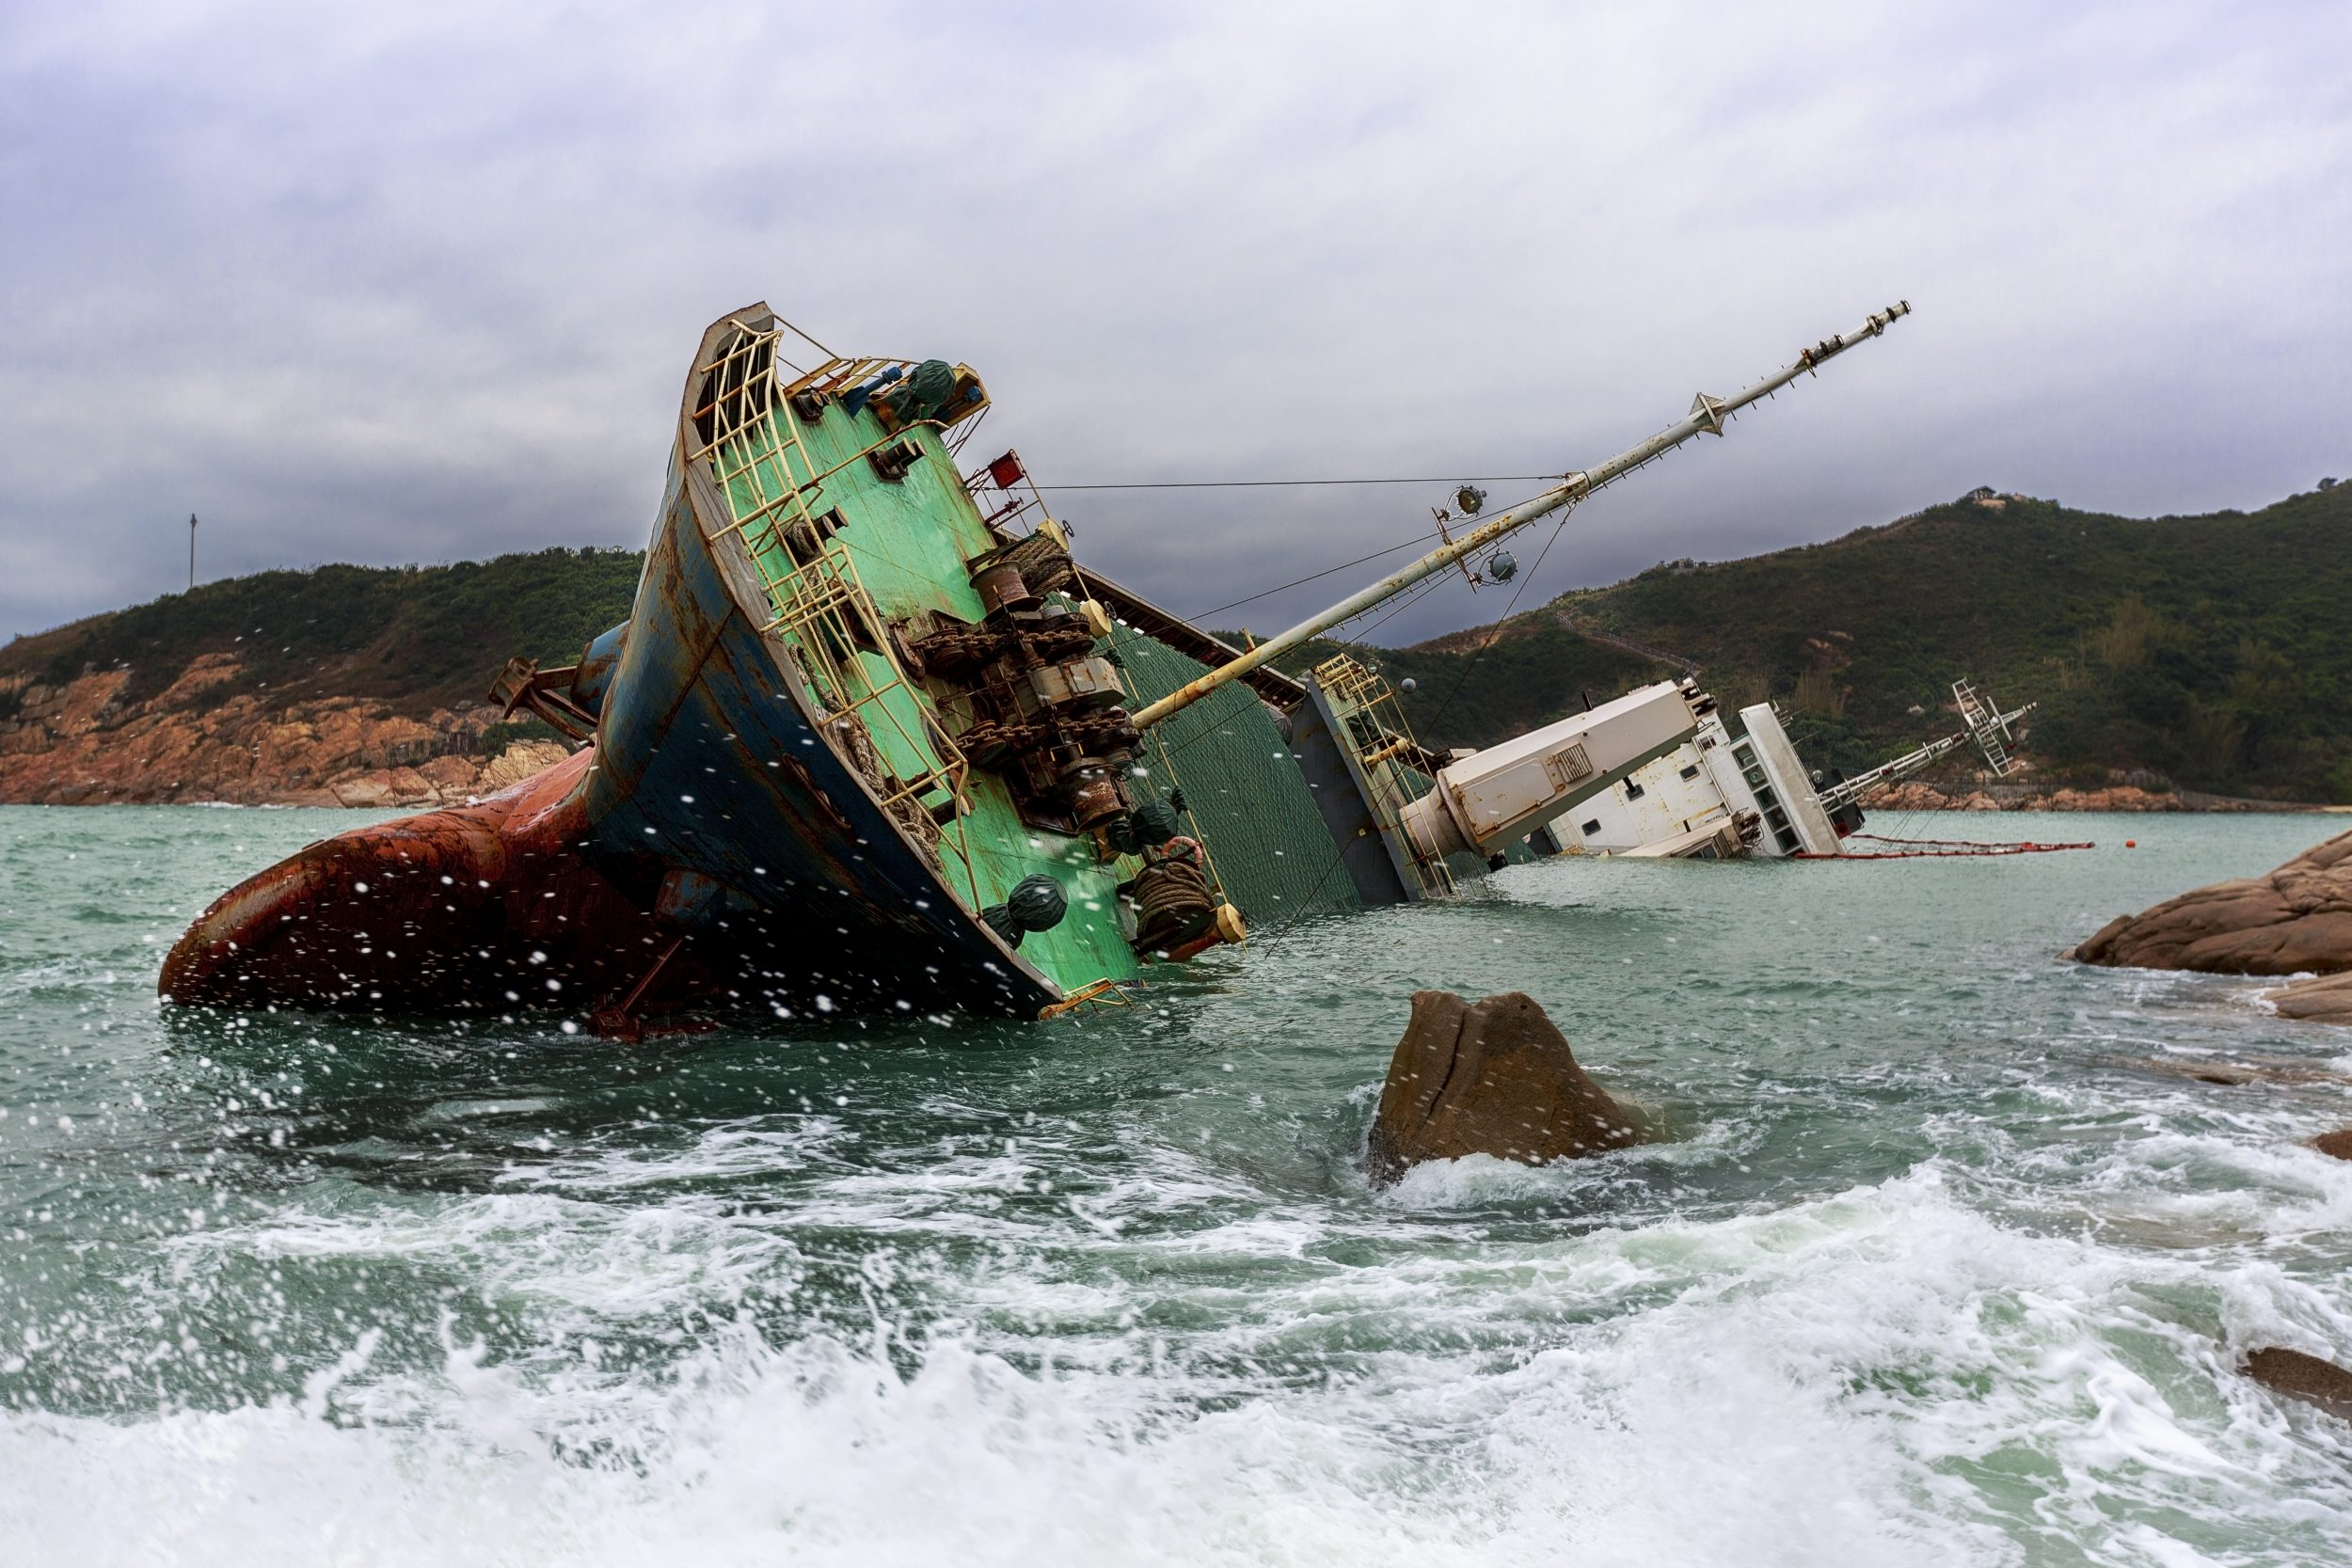 Vessel Capsizing and Sinking